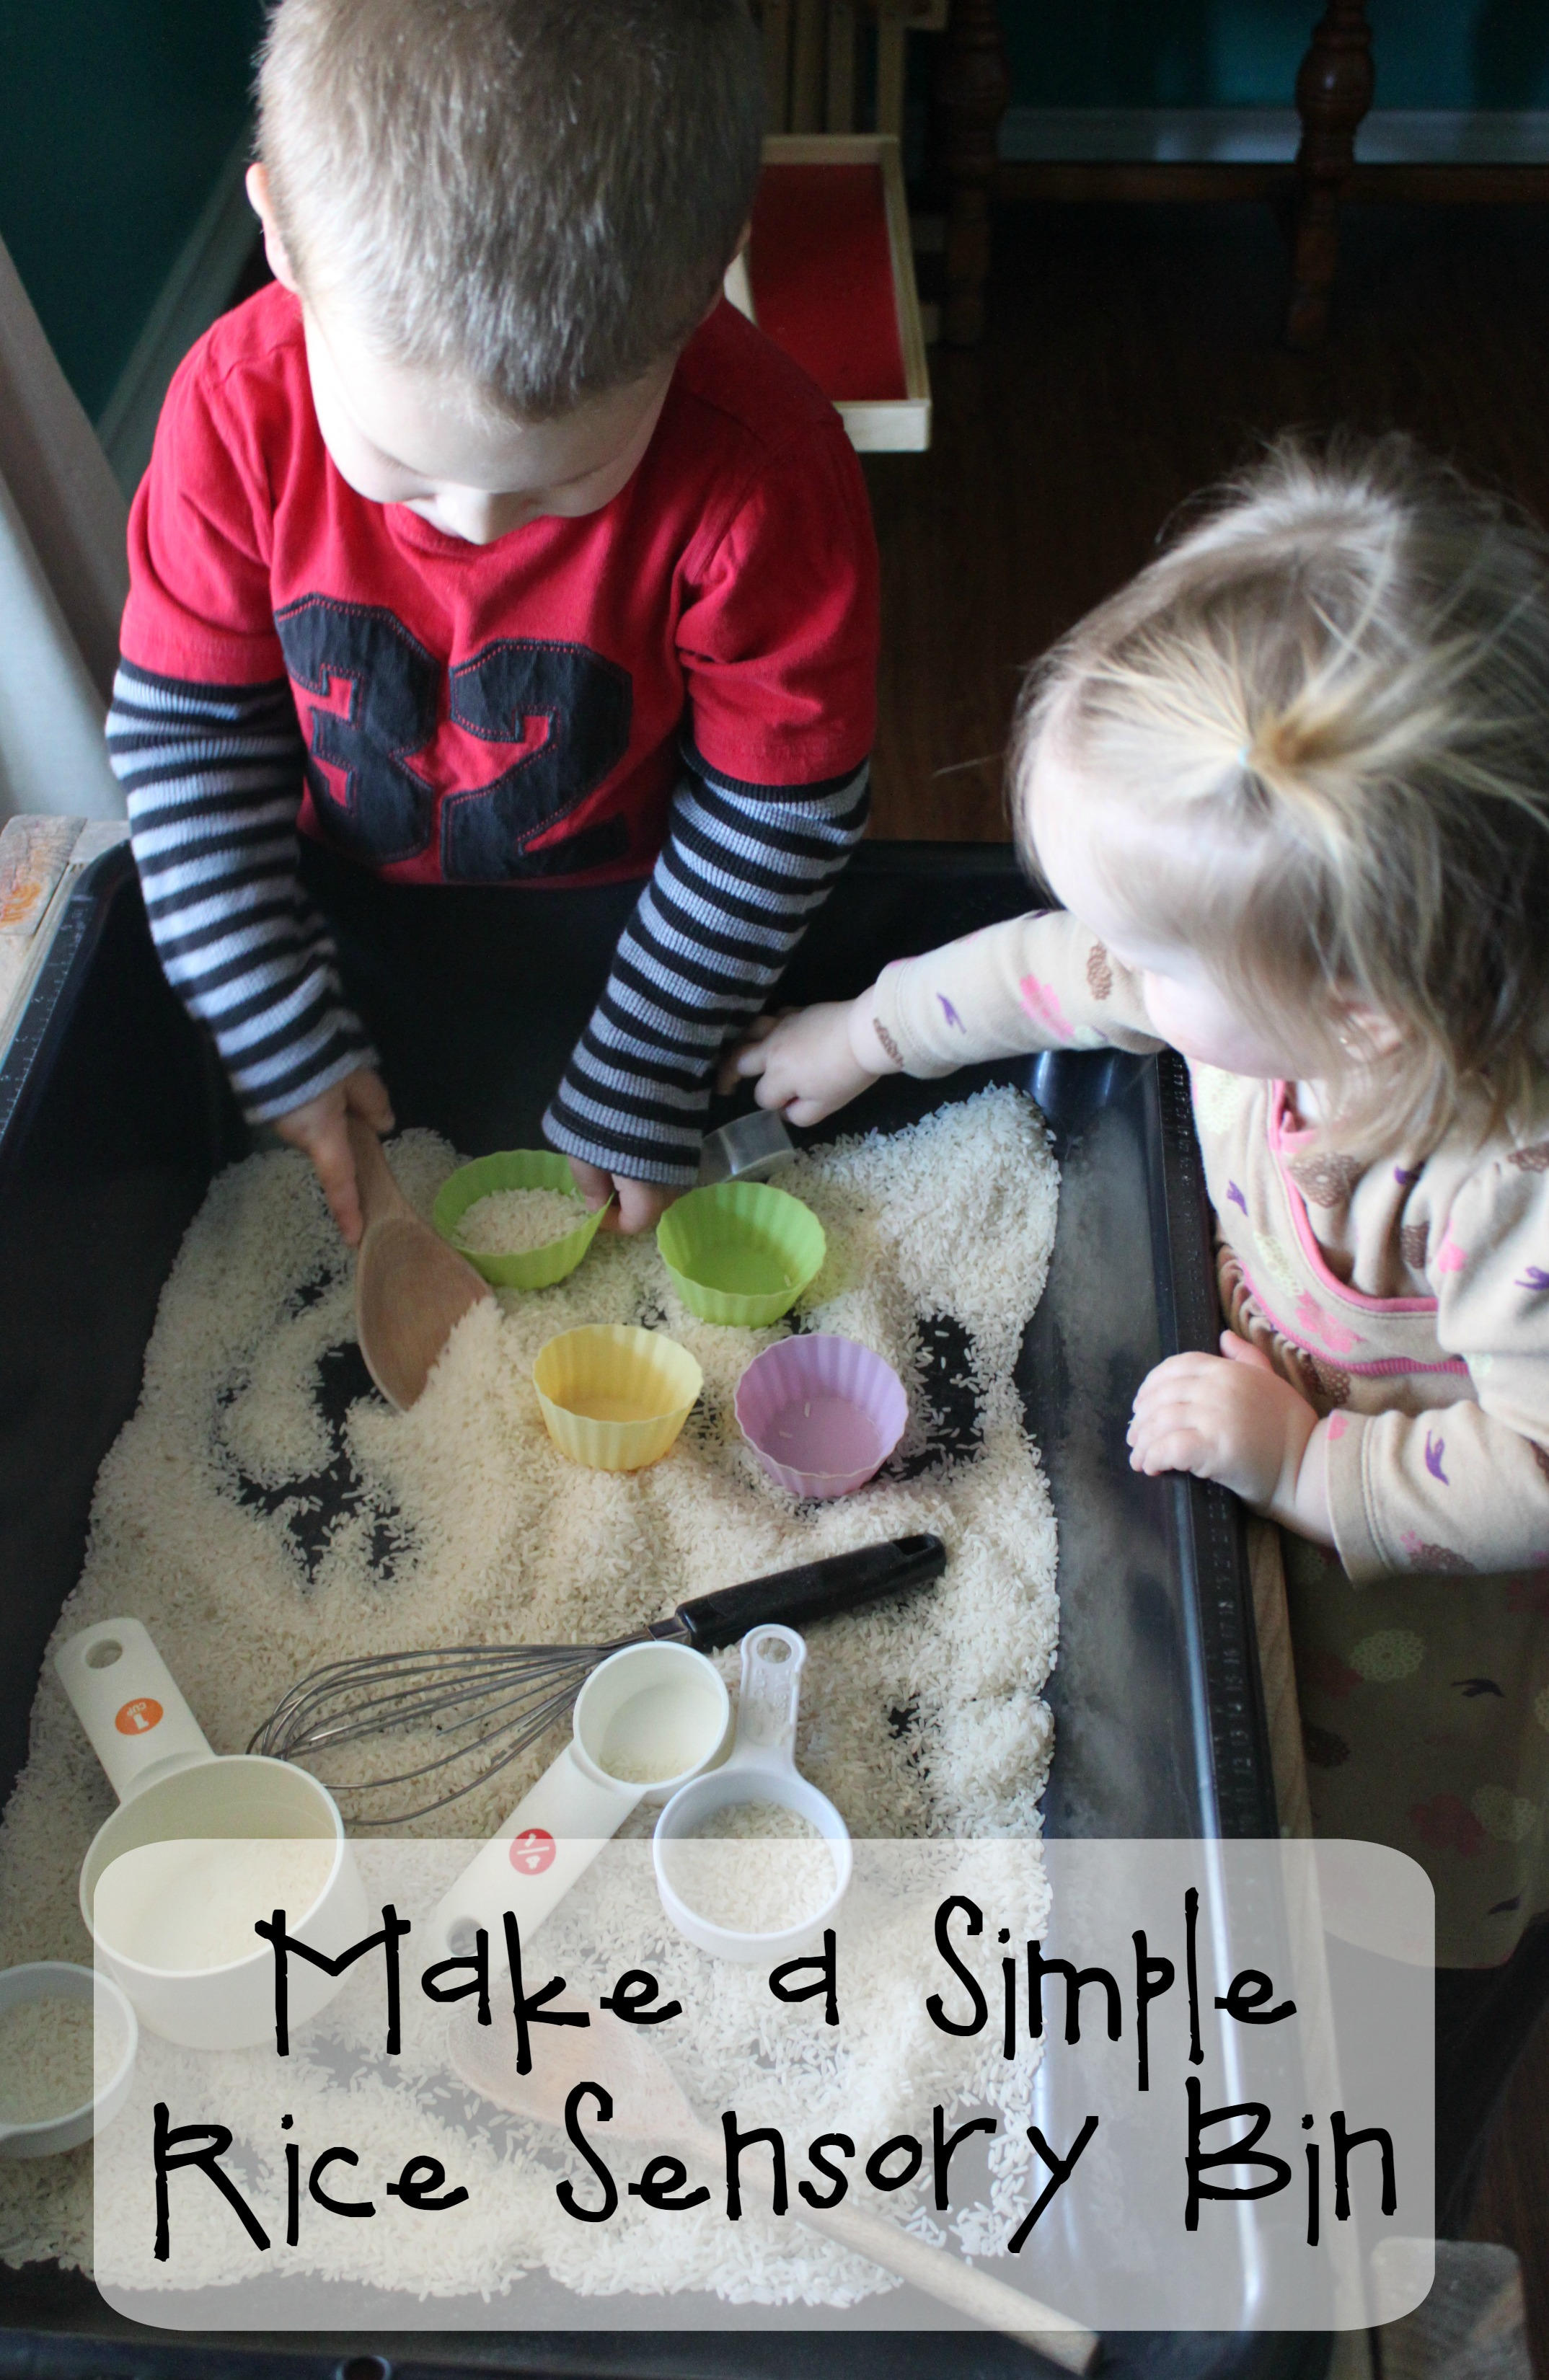 Simple And Smart Nail Art Ideas: Quick & Easy Indoor Play Ideas: Make A Simple Rice Sensory